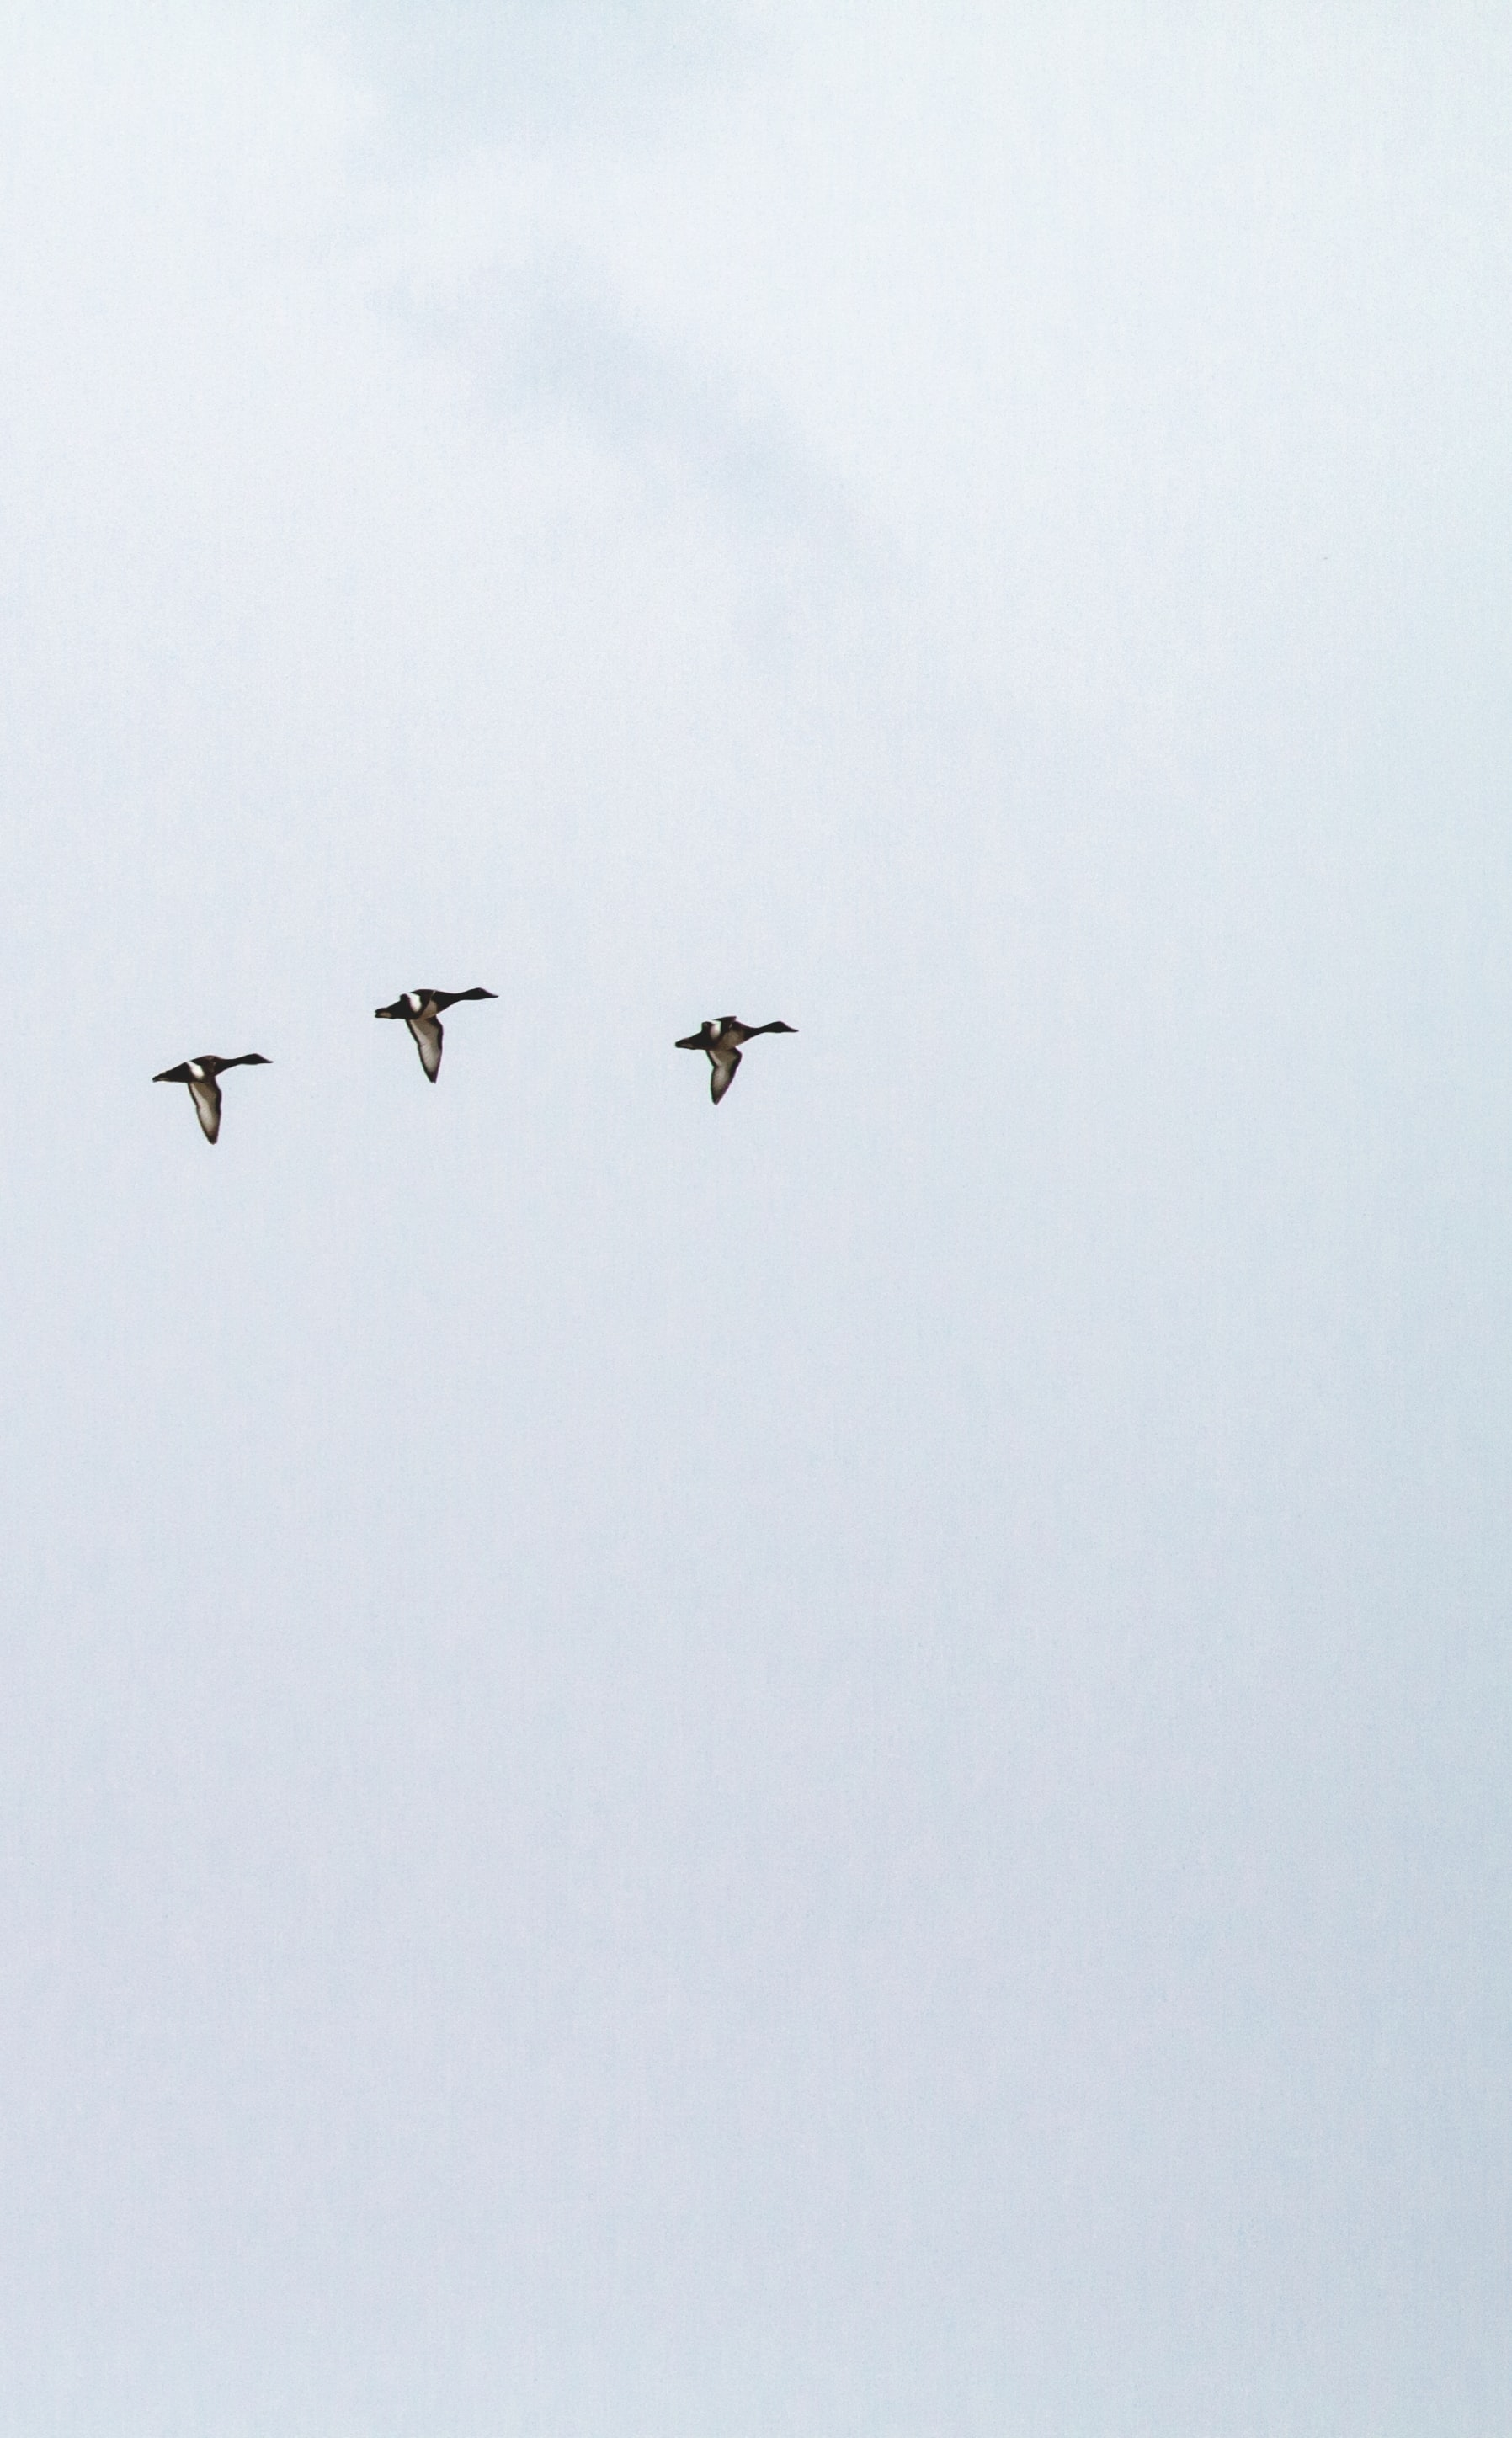 three ducks flying under the clouds during daytime